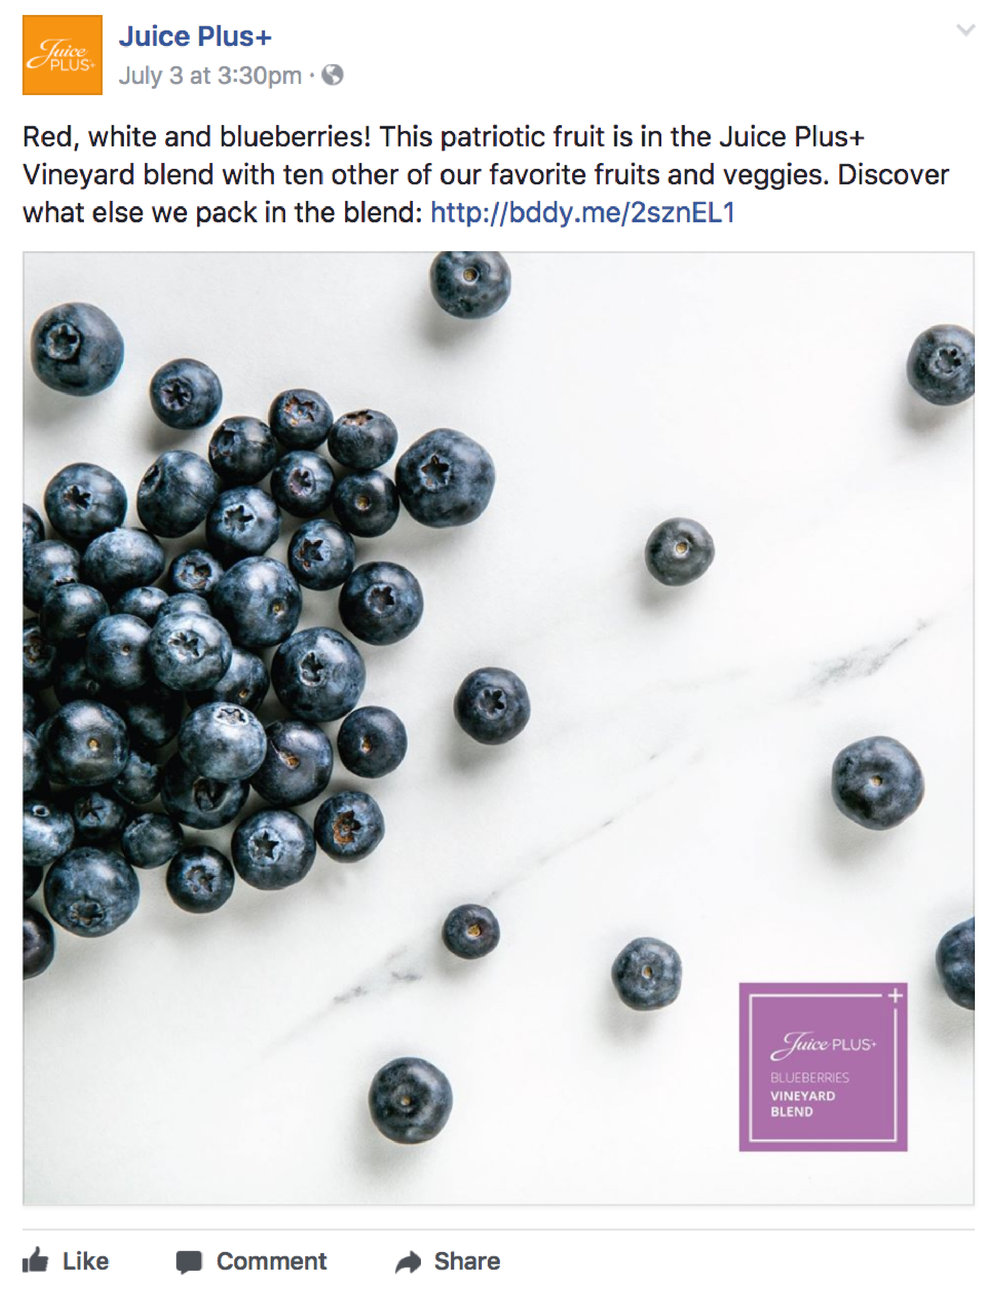 Juice Plus+ Blueberries